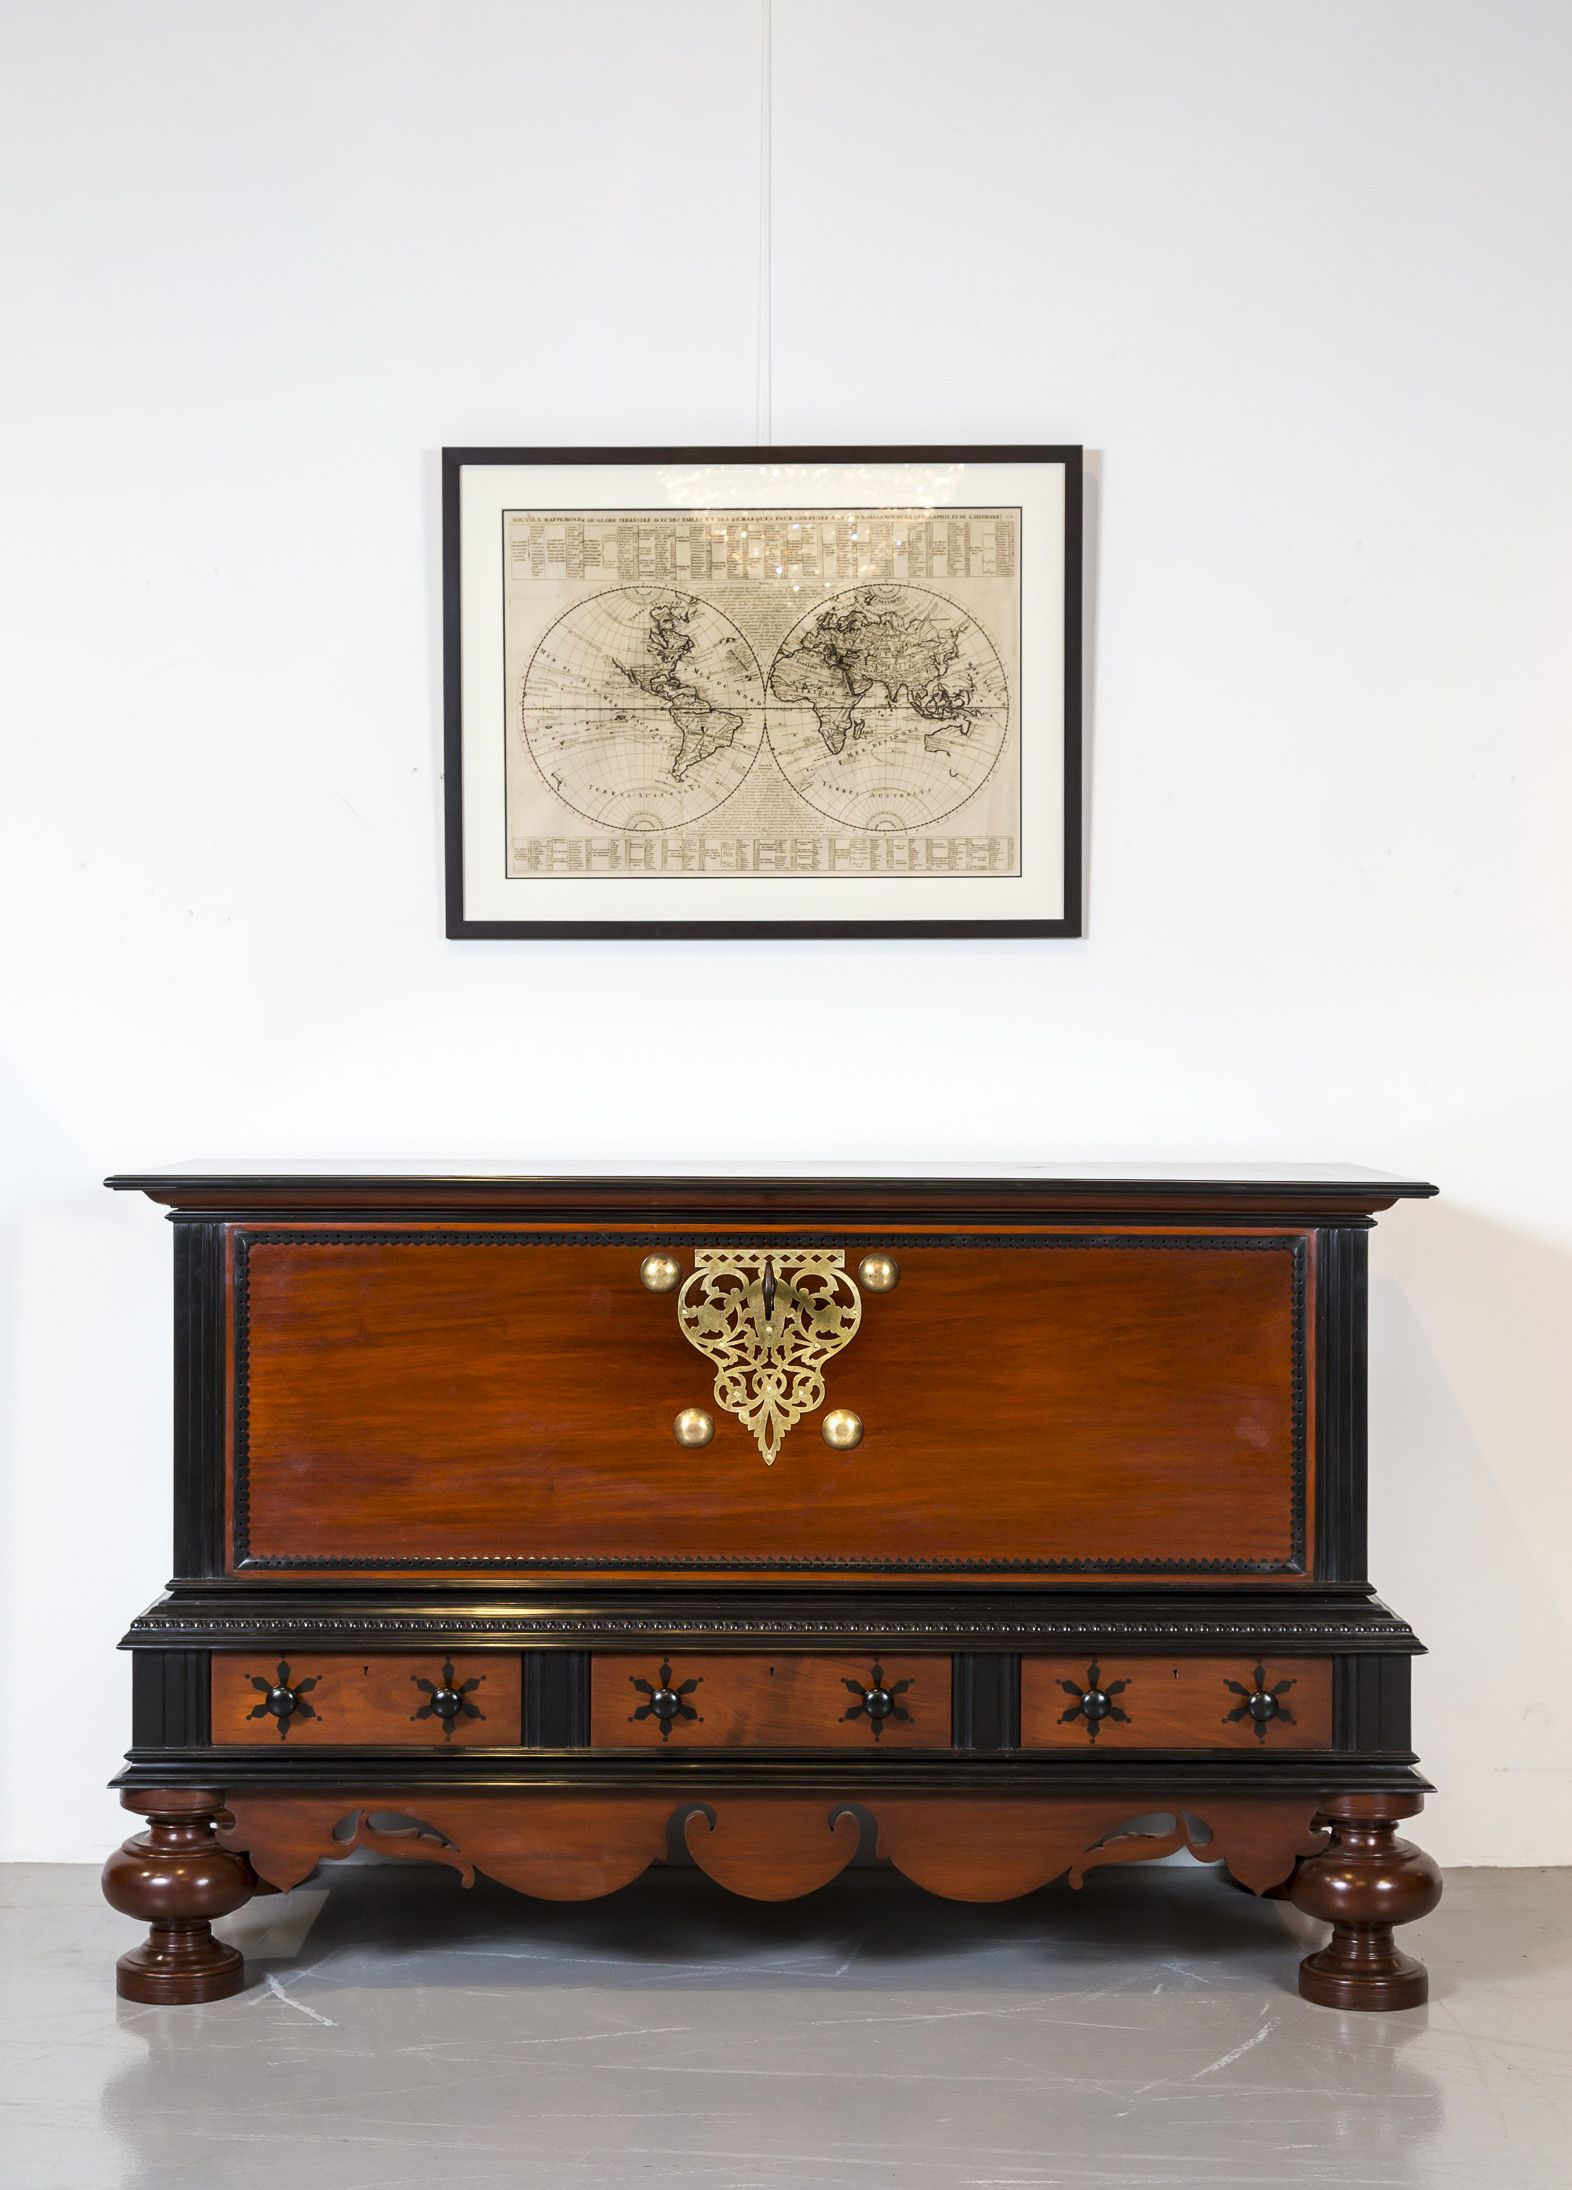 A Stunning, Large Dutch Colonial Storage Chest Of Solid Plank Construction  In Mahogany, The